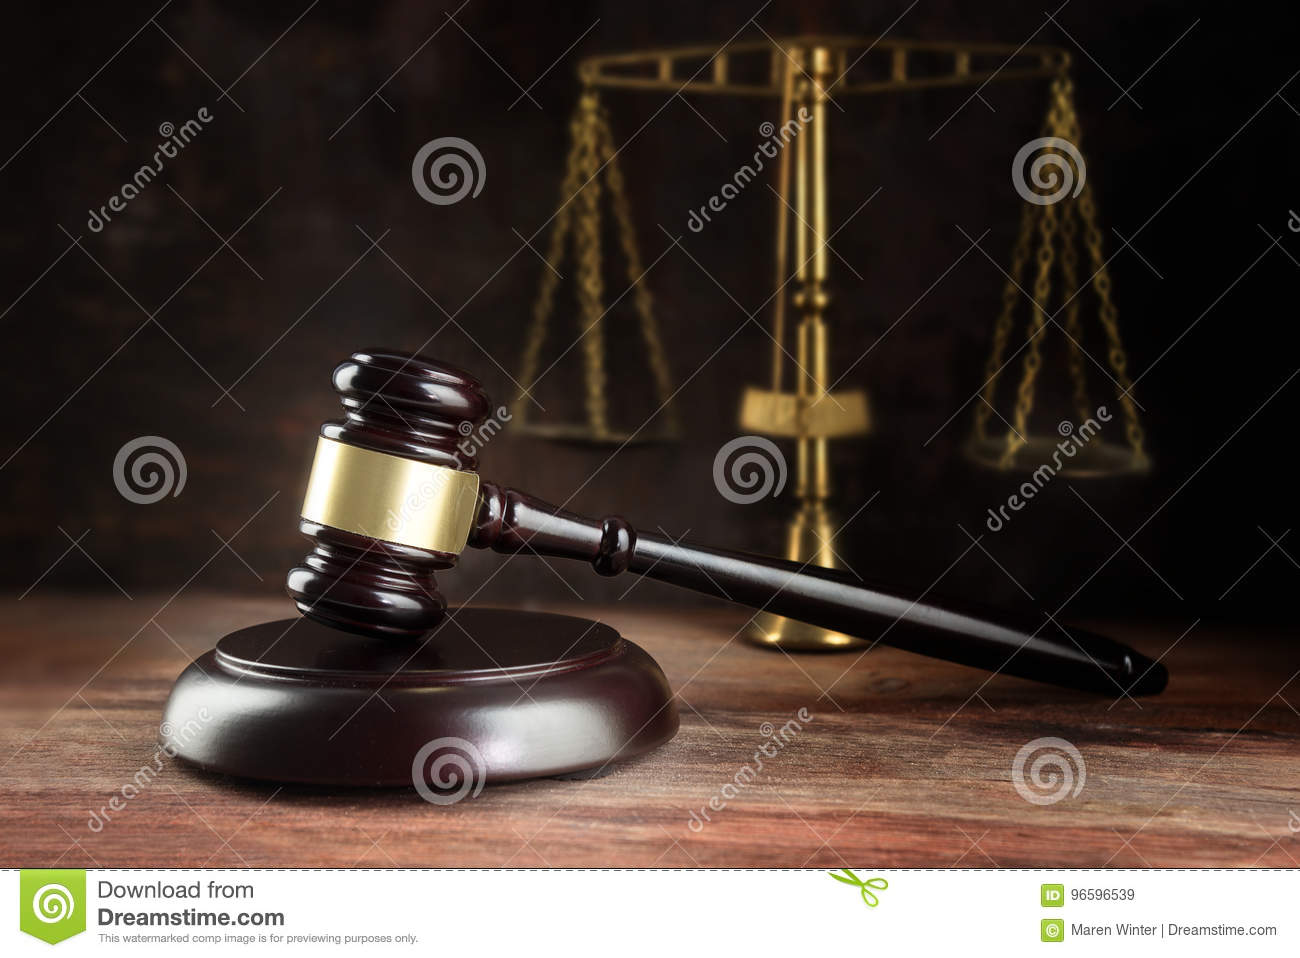 Judge Gavel And Scales On A Wooden Desk Symbol For Balance And